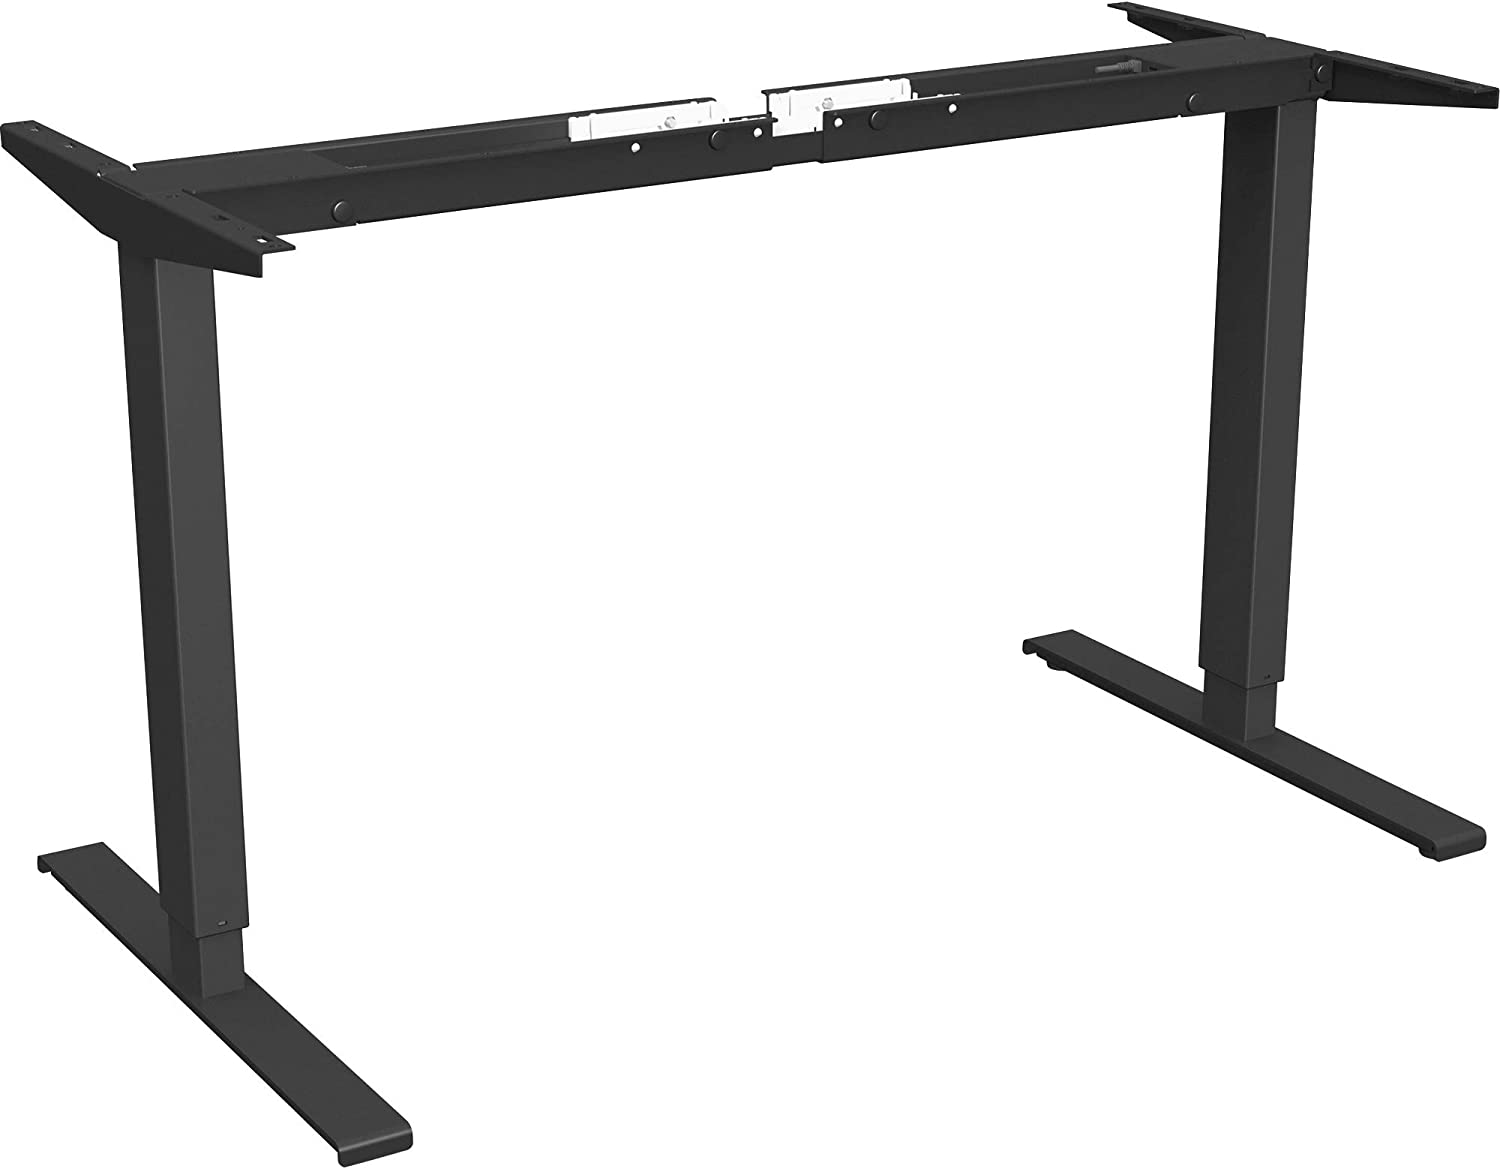 Lorell Quadro Workstation Sit-to-Stand 2-Tier Table Base, Black